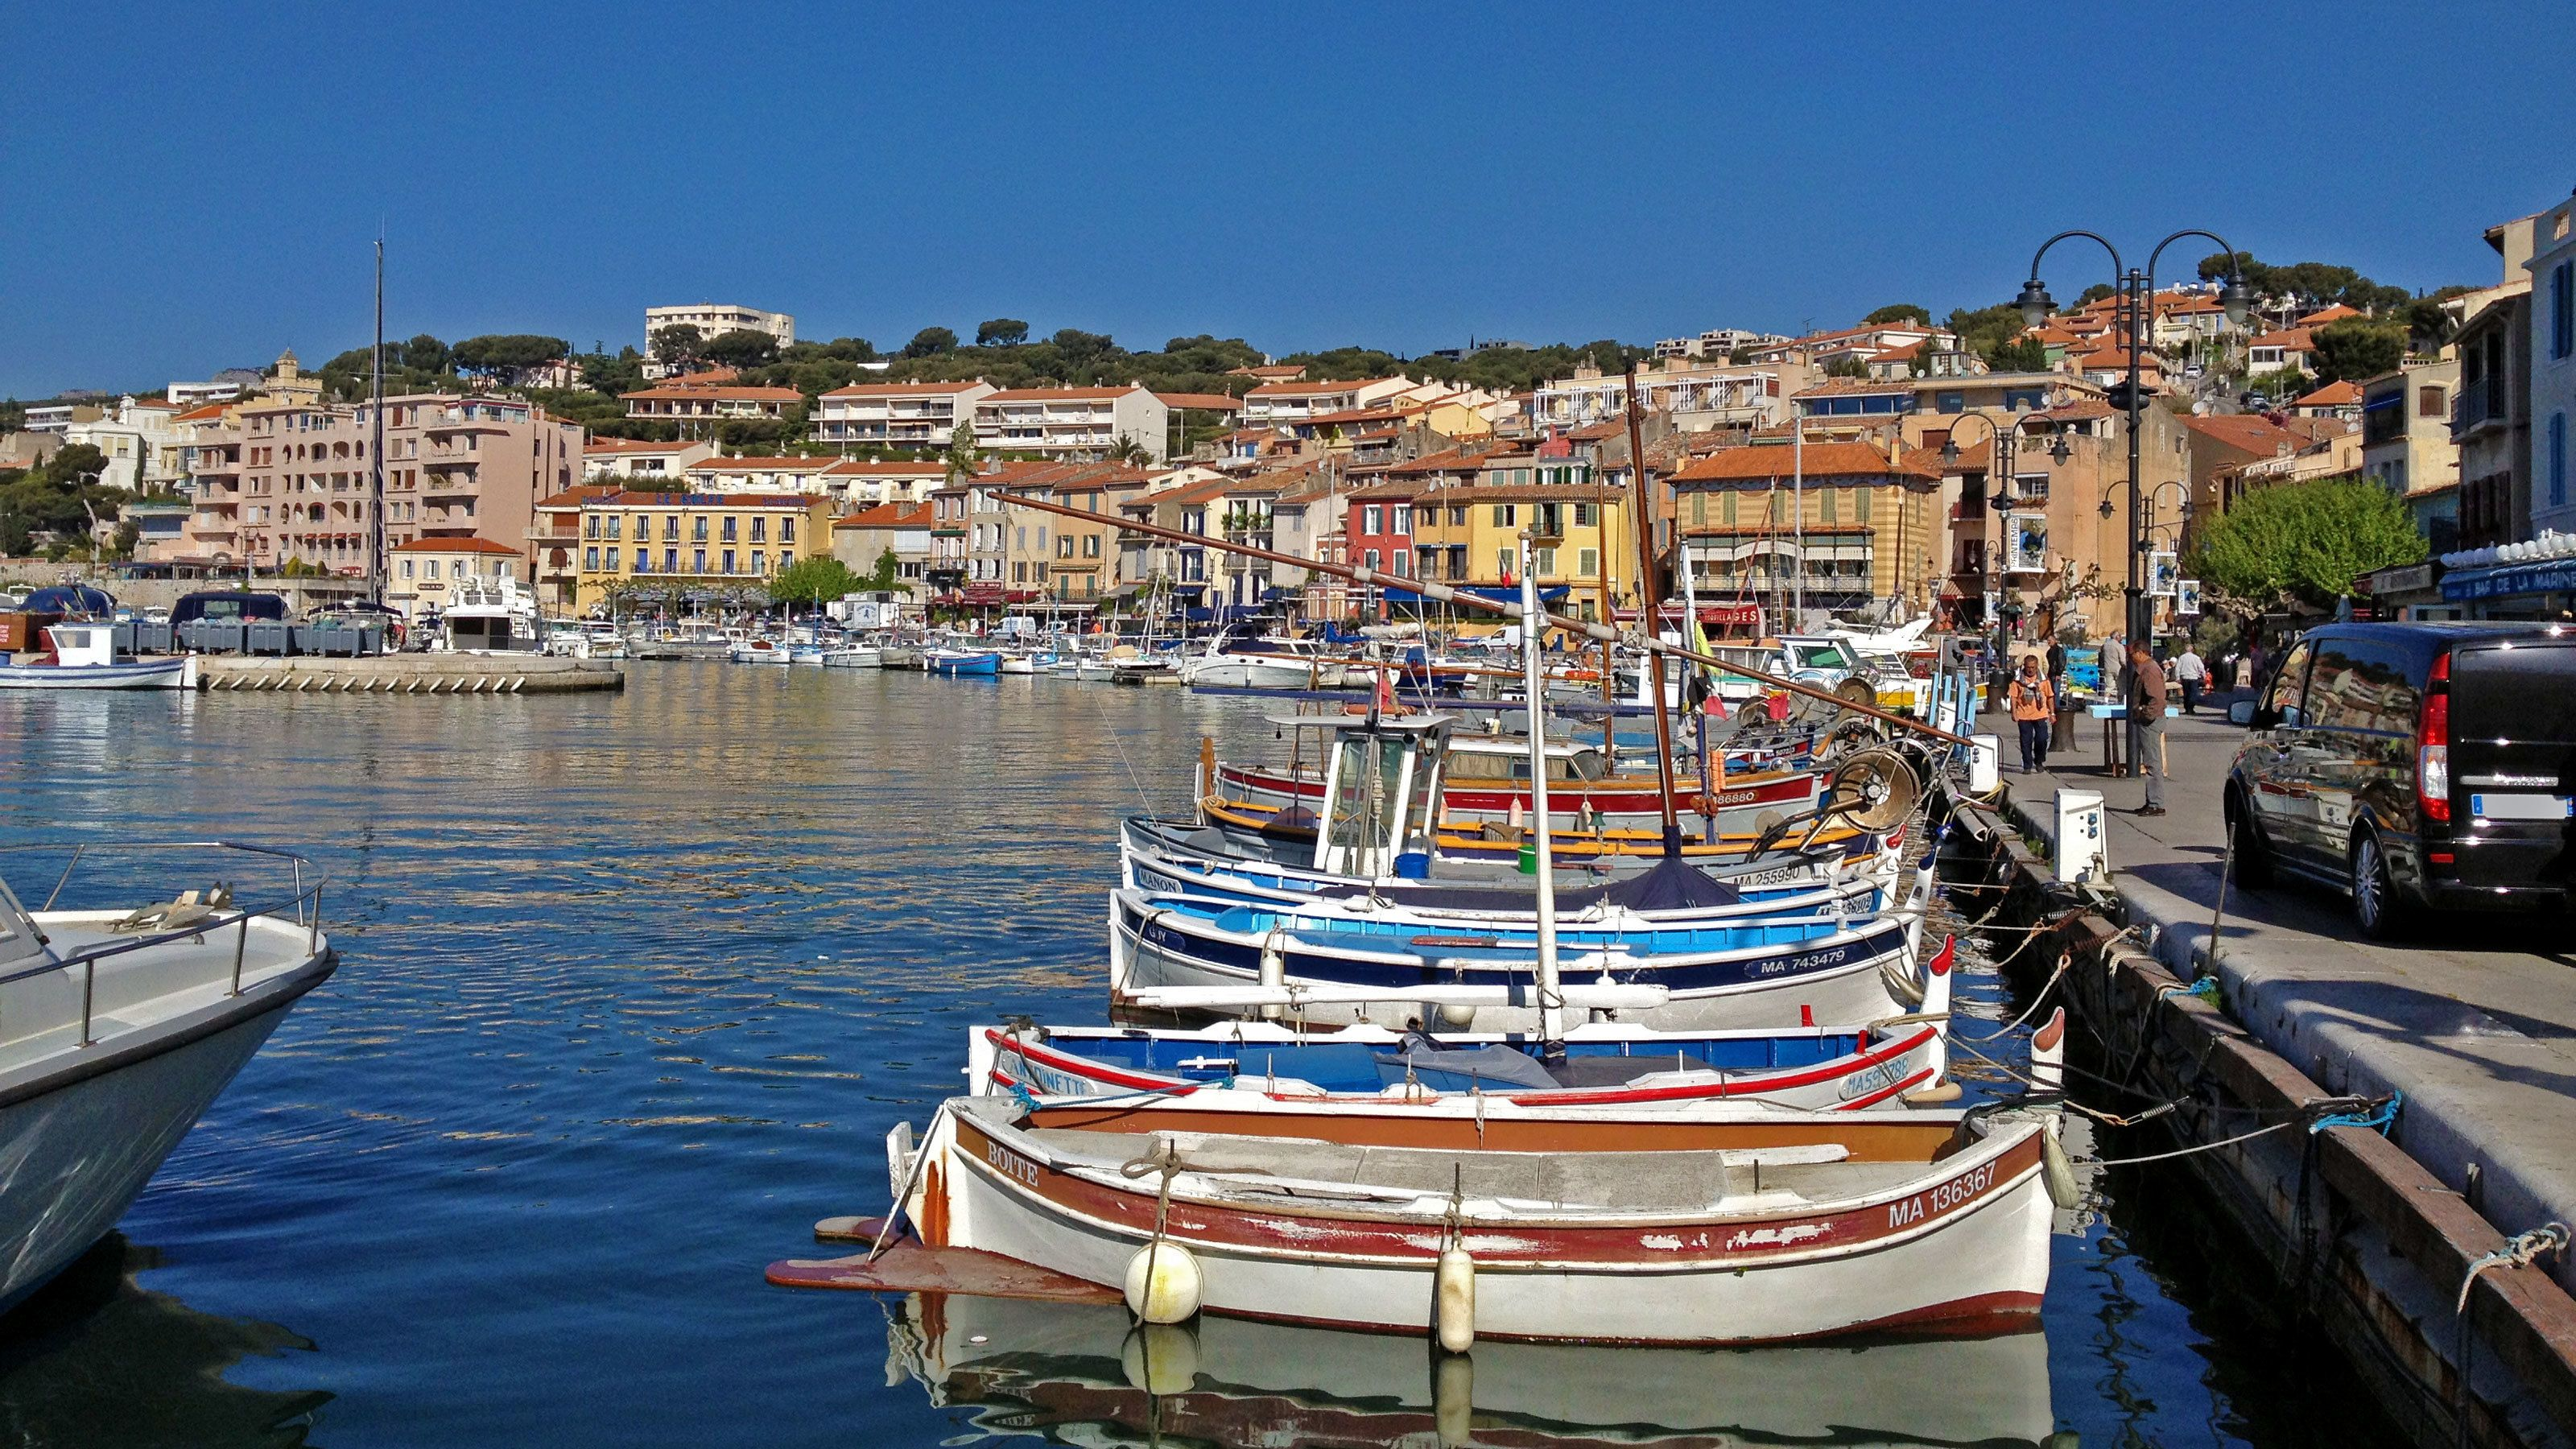 Boats docked at the harbor in Cassis